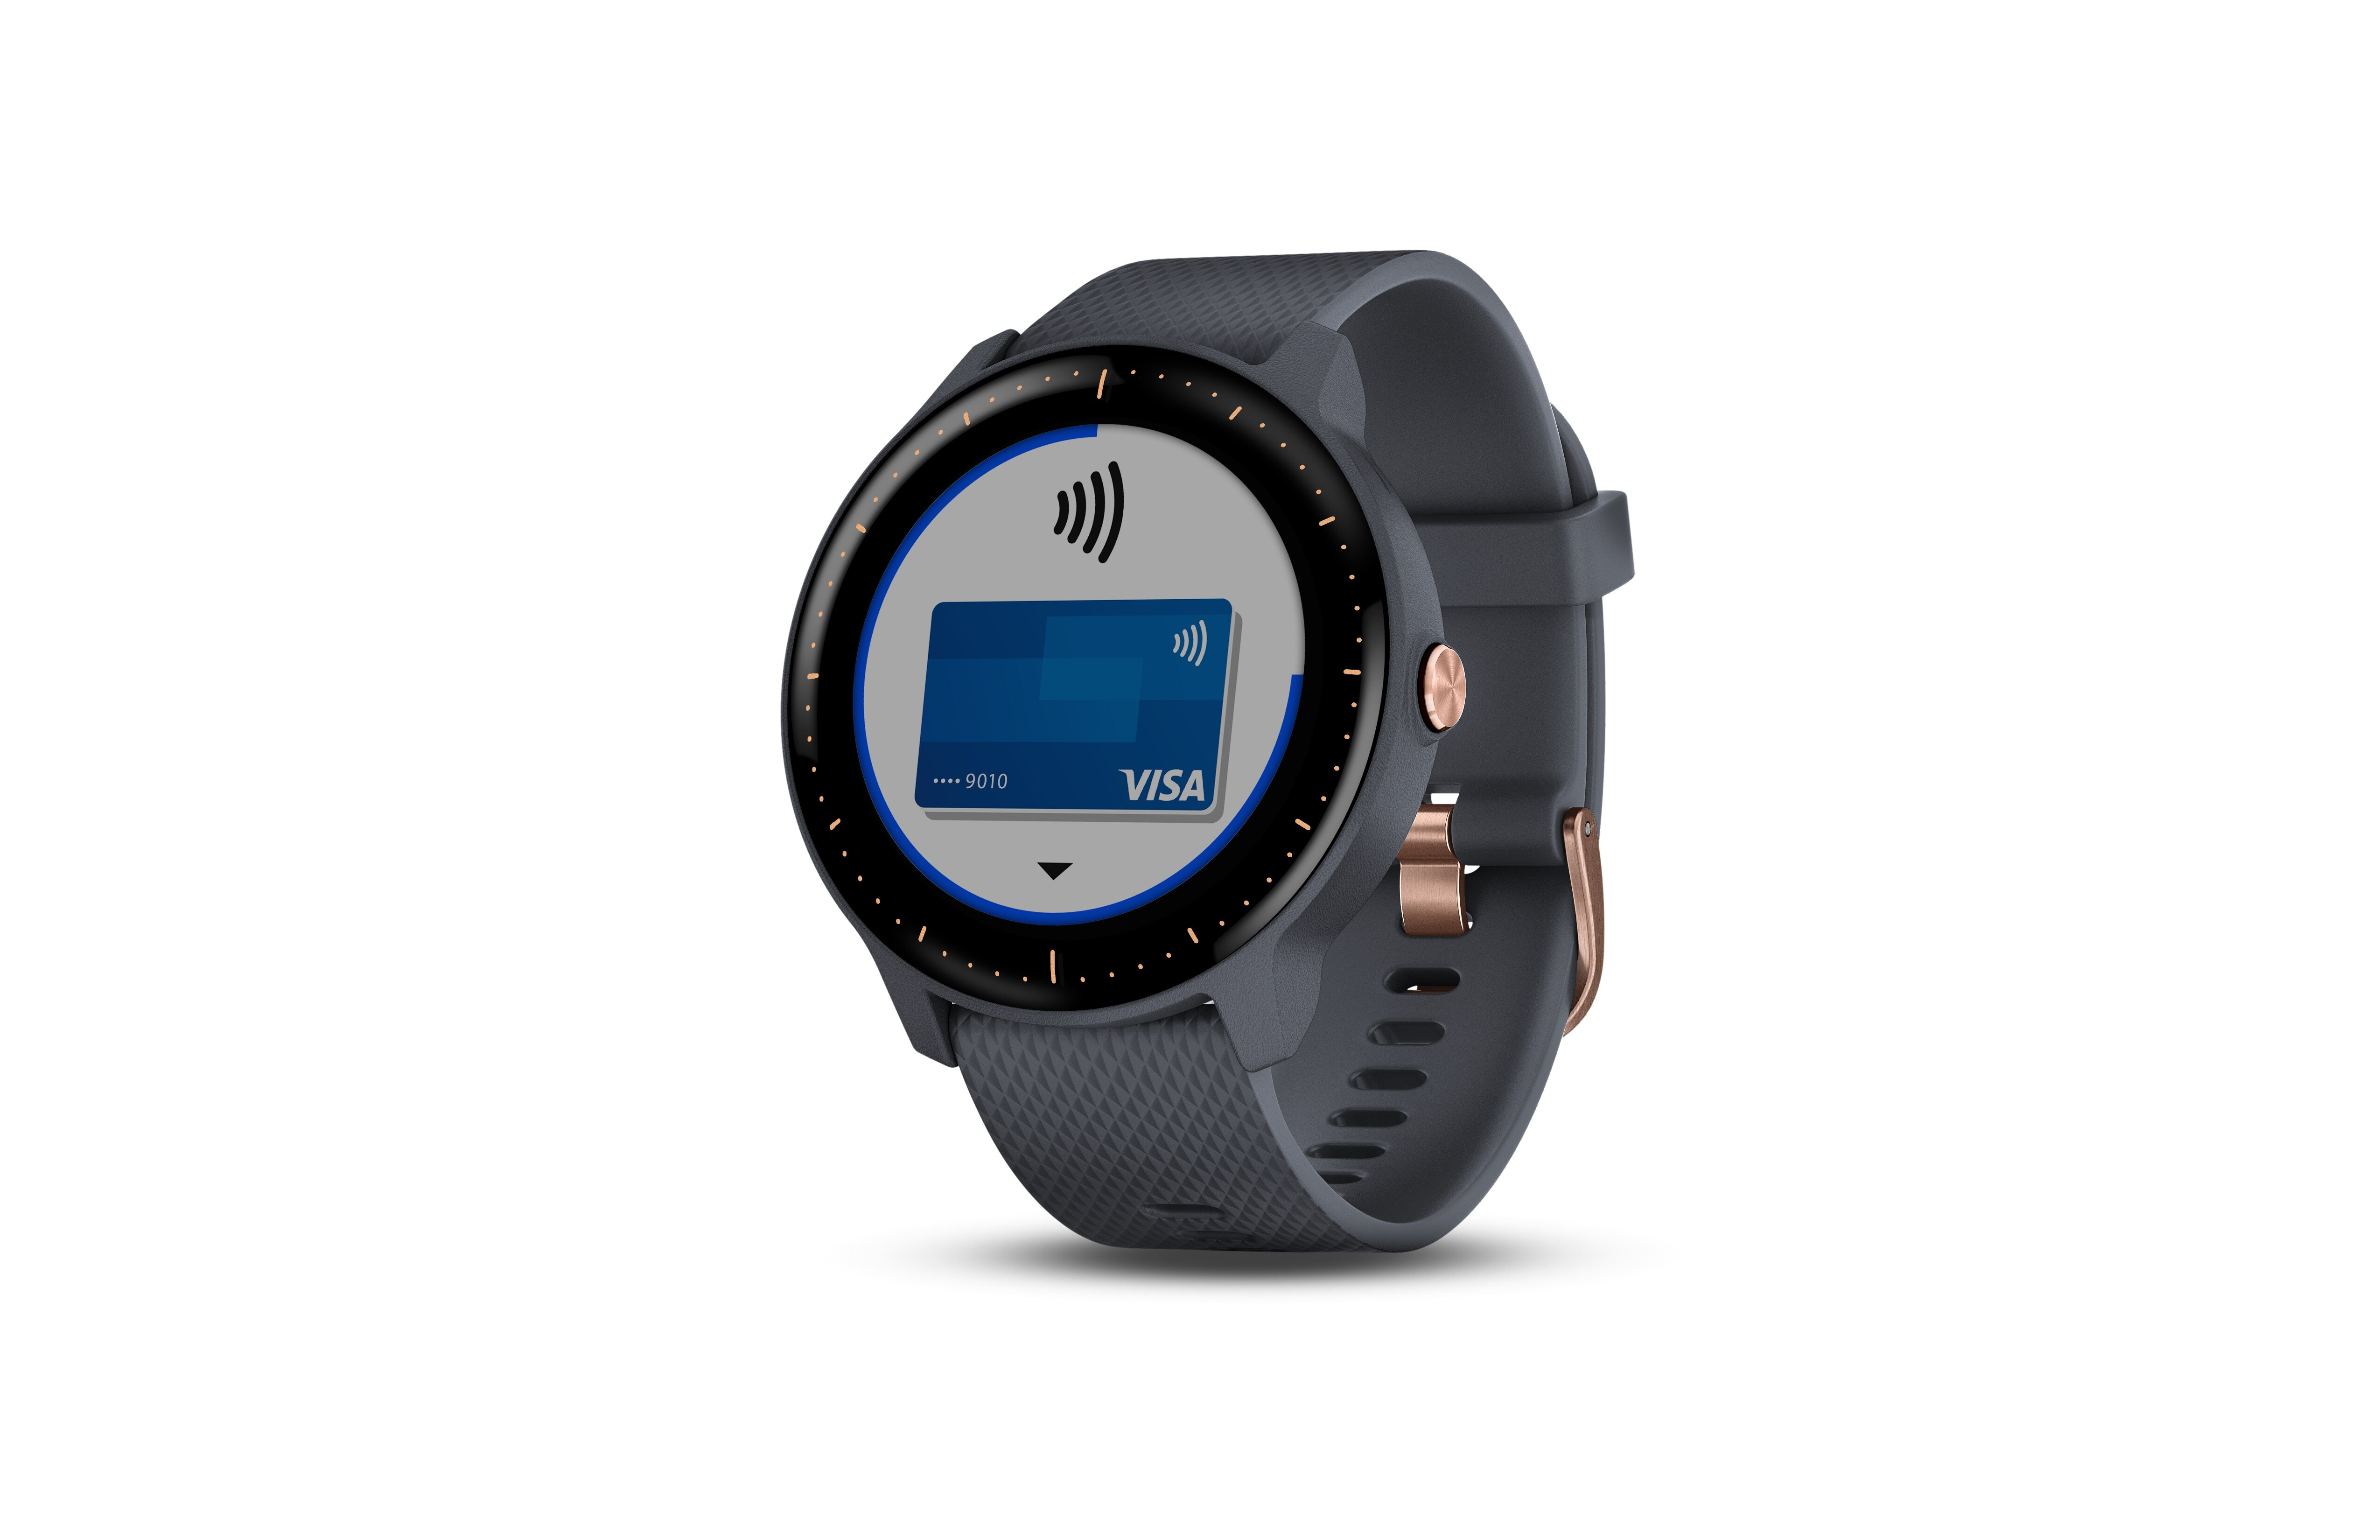 Garmin vivoactive® 3 Music all in one watch: GPS, music and contactless payment